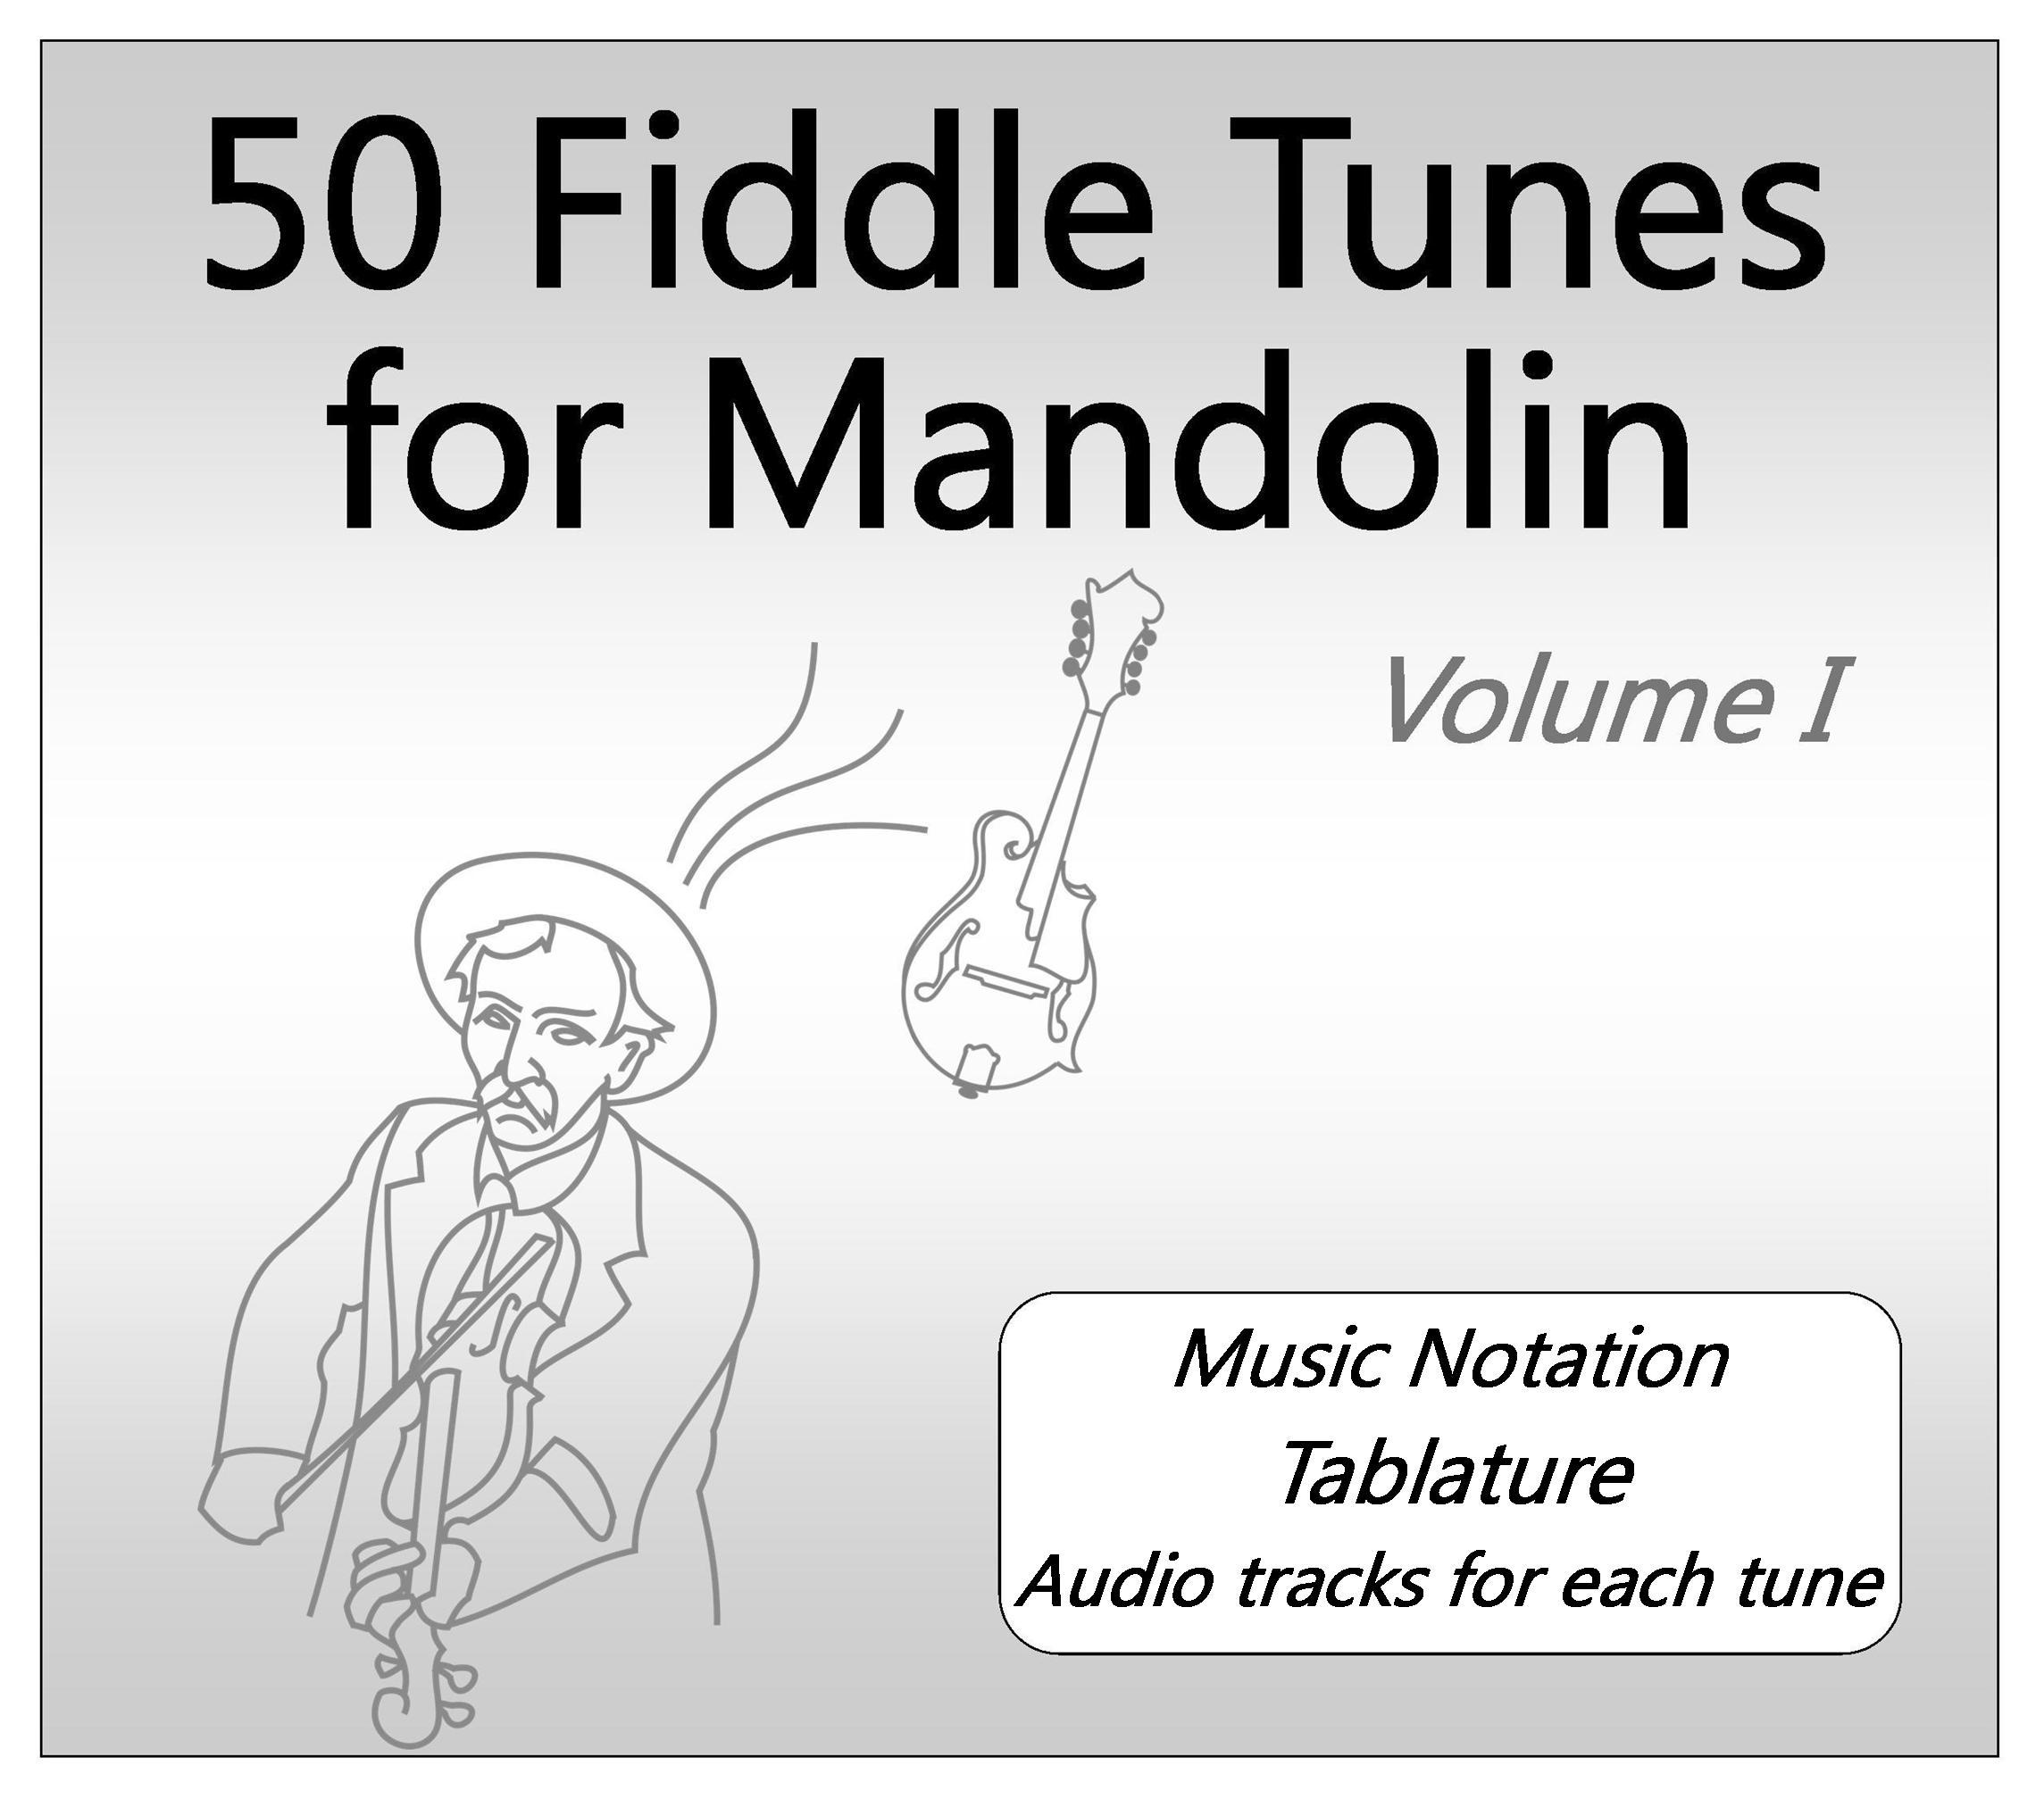 50-fiddle-tunes-for-mandolin-product-image